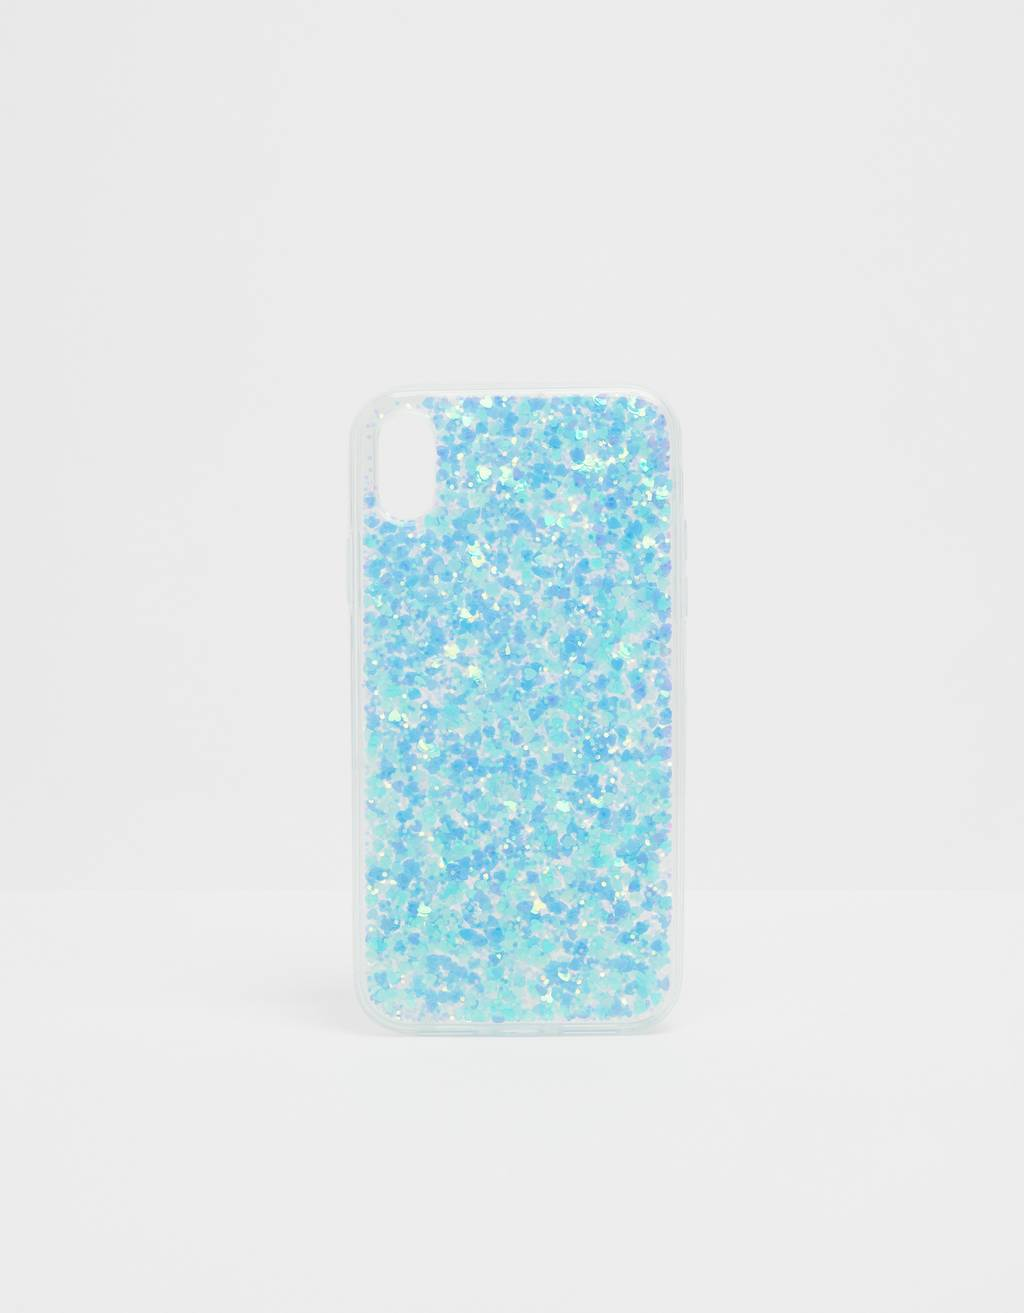 Glitter iPhone XR case